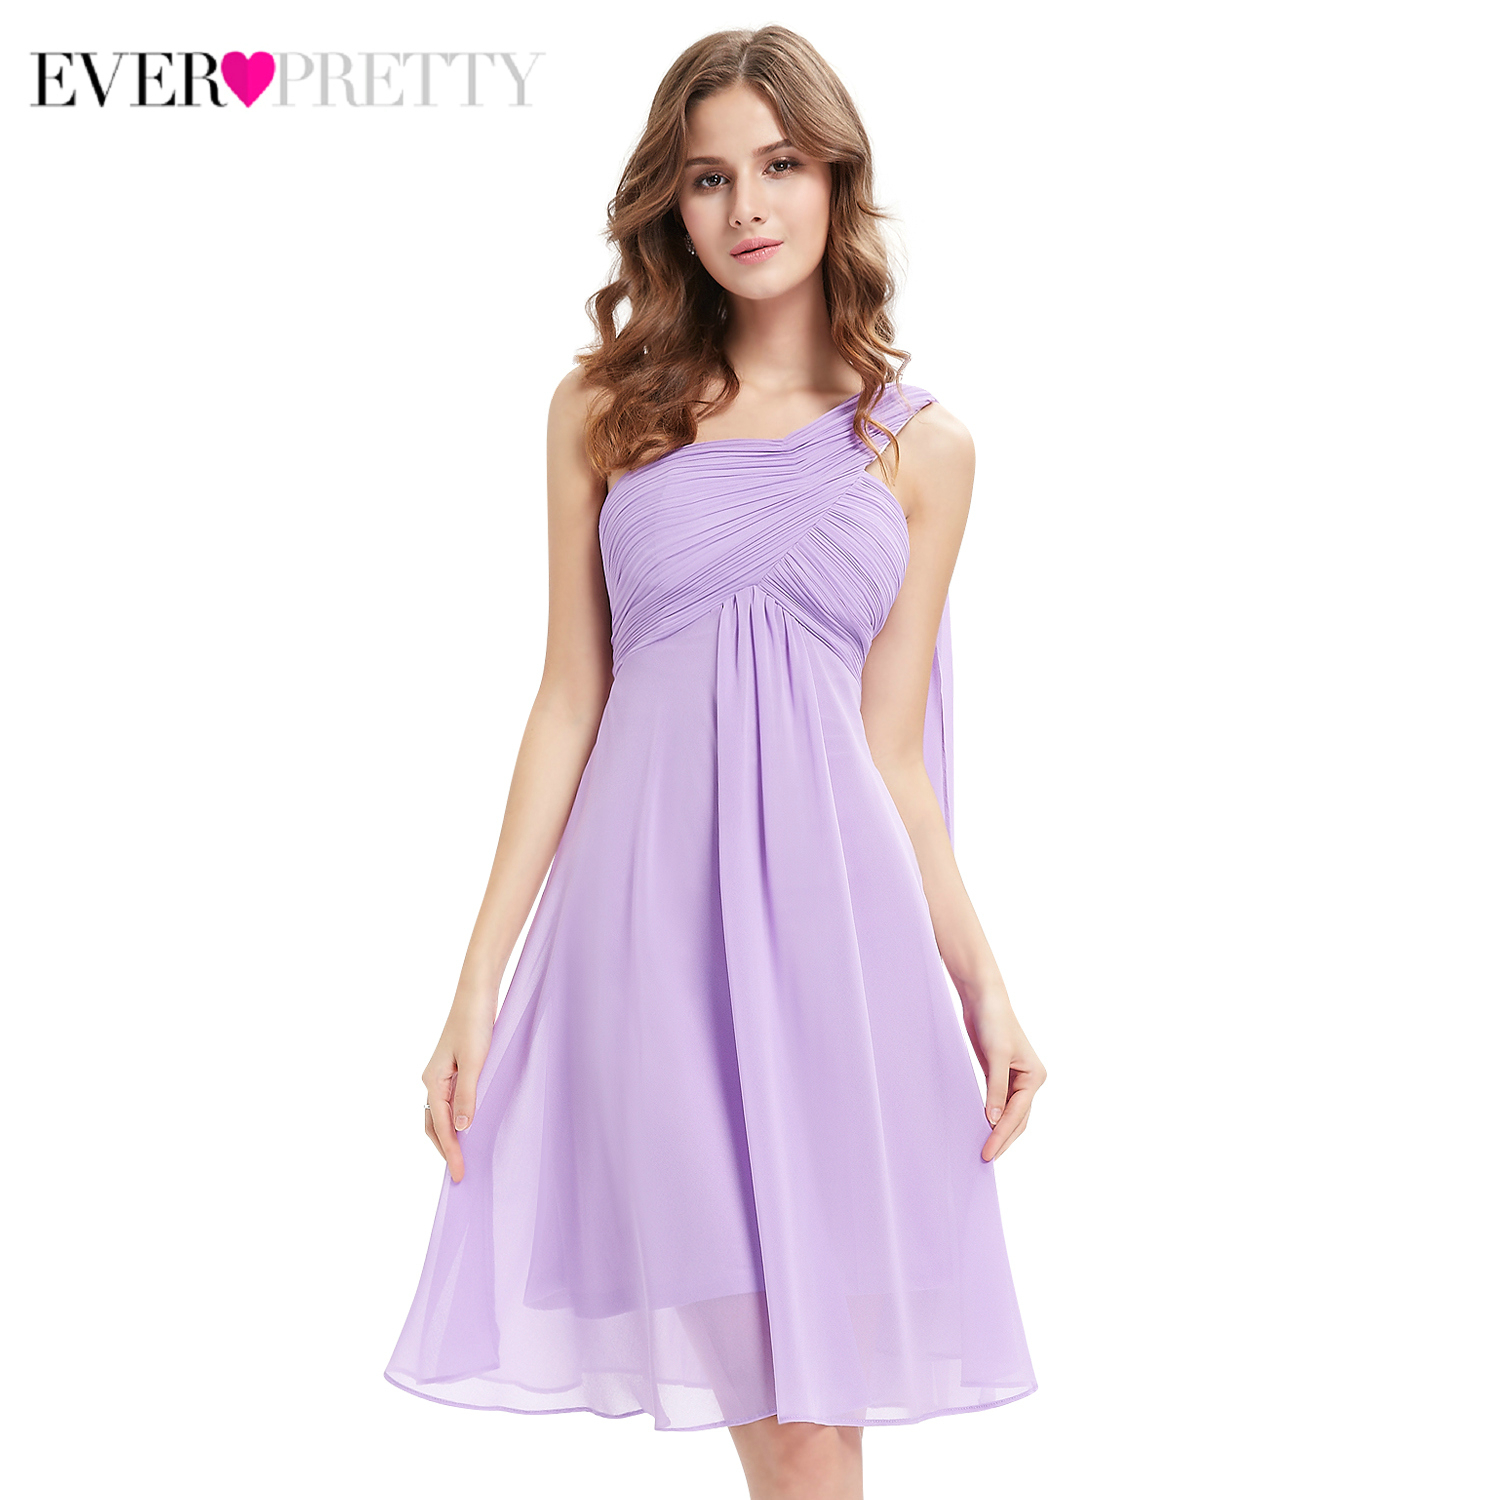 Candy Color   Cocktail     Dresses   Ever Pretty A-Line Sleeveless One-Shoulder Elegant Formal   Dresses   HE03537 Abito Da   Cocktail